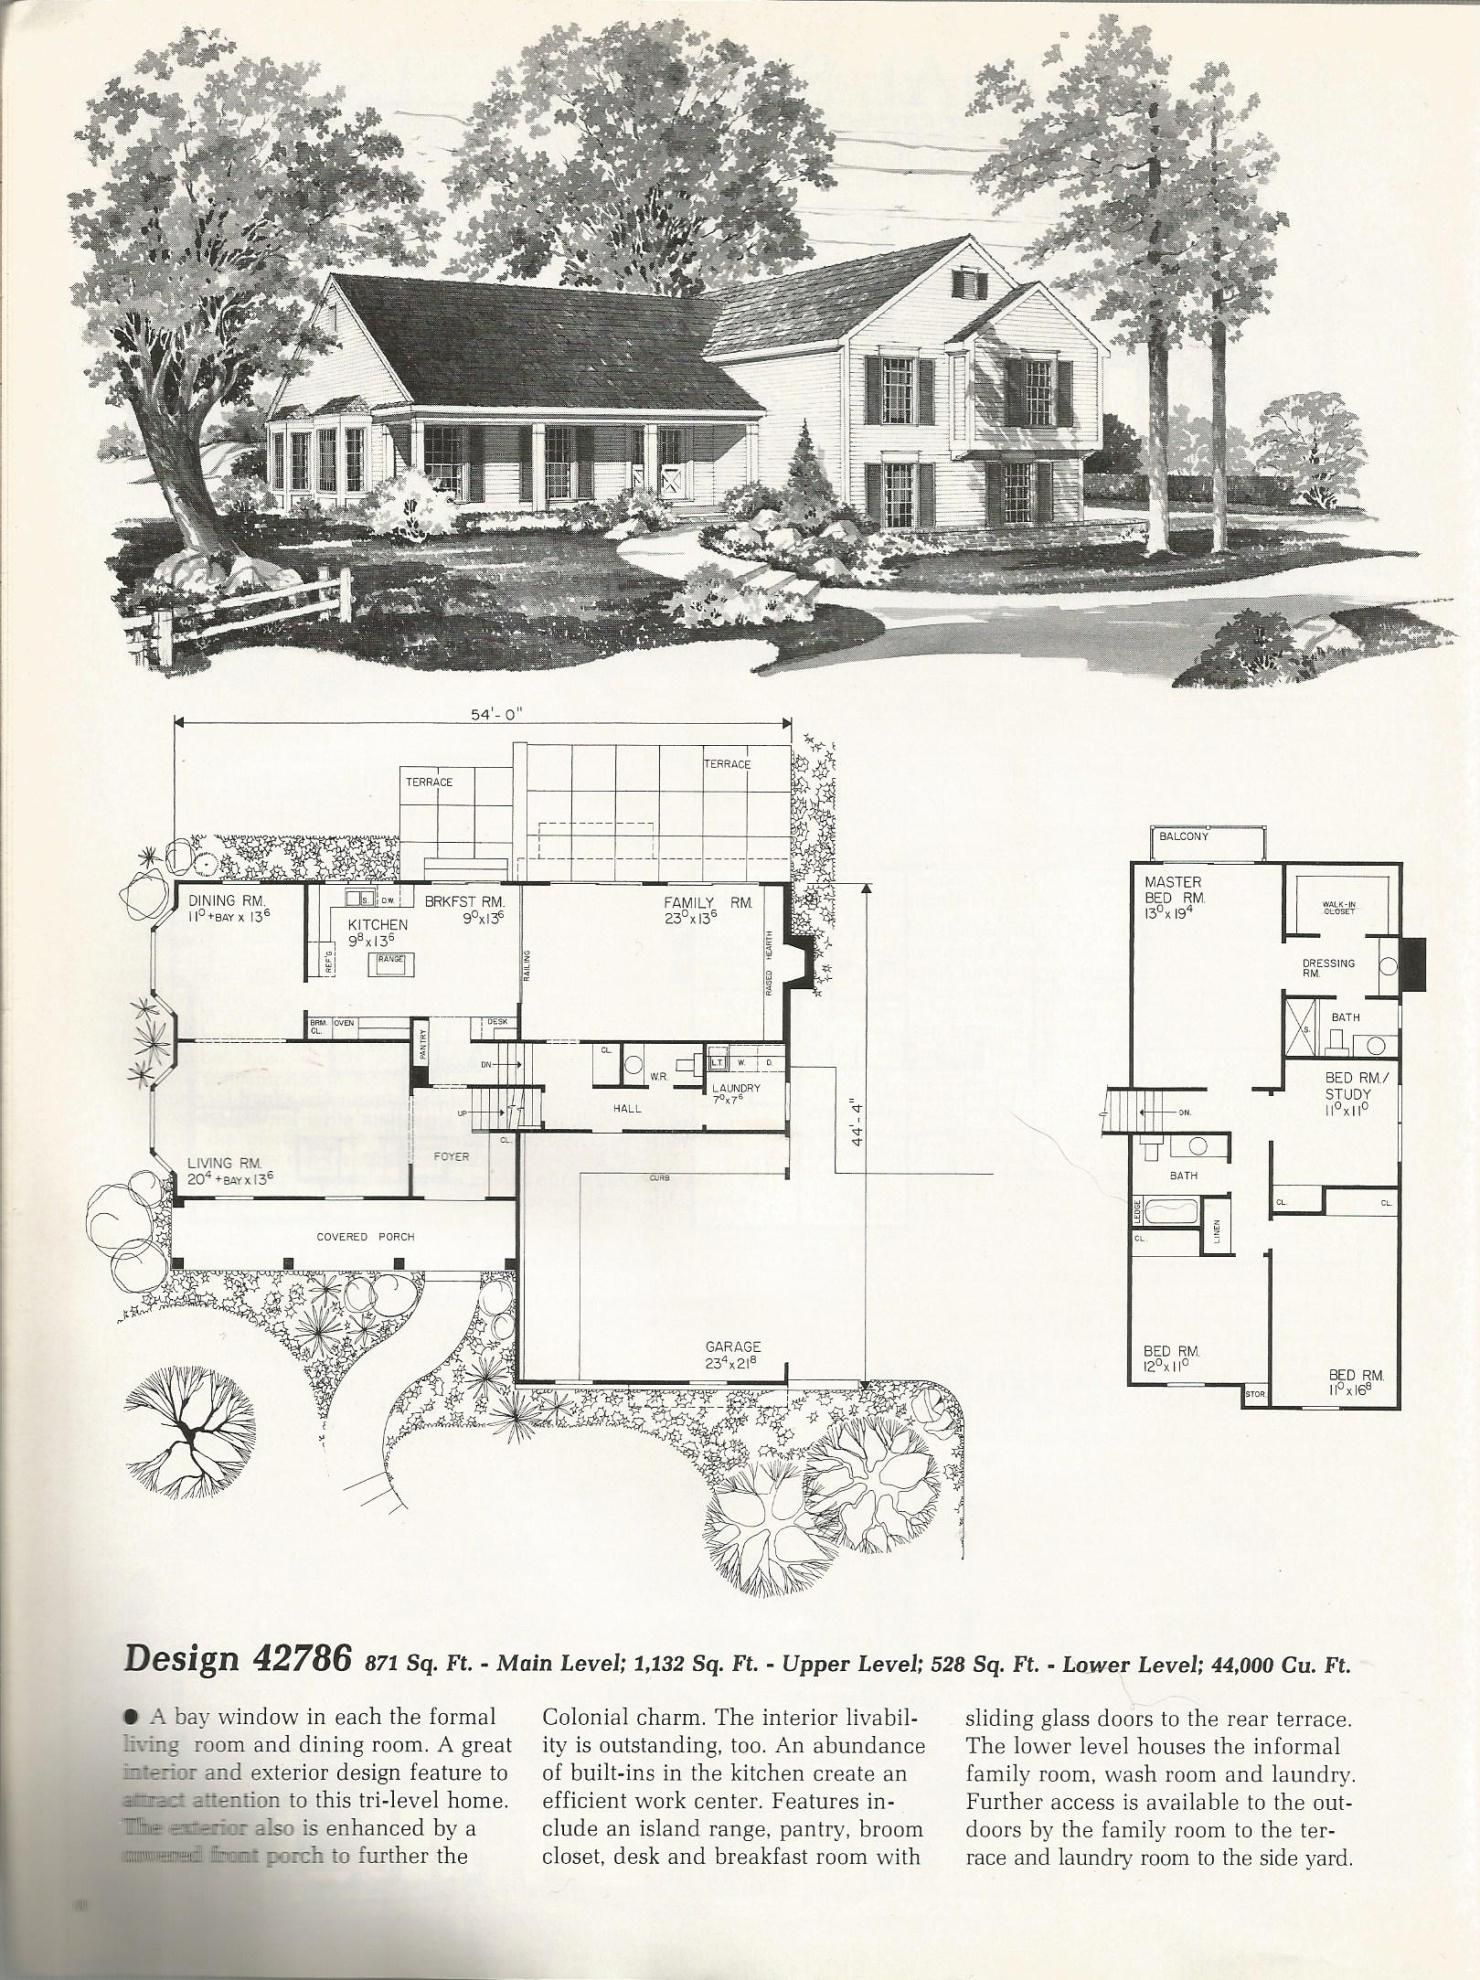 This vintage house plan has a bay window in the formal ... on house with lots of windows, house plans with large master suites, house plans with interior balconies, house plans with material list, house plans with back view, house windows from outside in, house plans with arched doors, house plans fireplace, house plans with walk-in closets, house designs with big windows, house plans with guest house, house plans with steps, house plans with pocket doors, house plans with window walls, house plans breakfast nook, house plans gourmet kitchen, house plans with soffits, house plans with a sunroom, house plans with glass, house plans with arches,